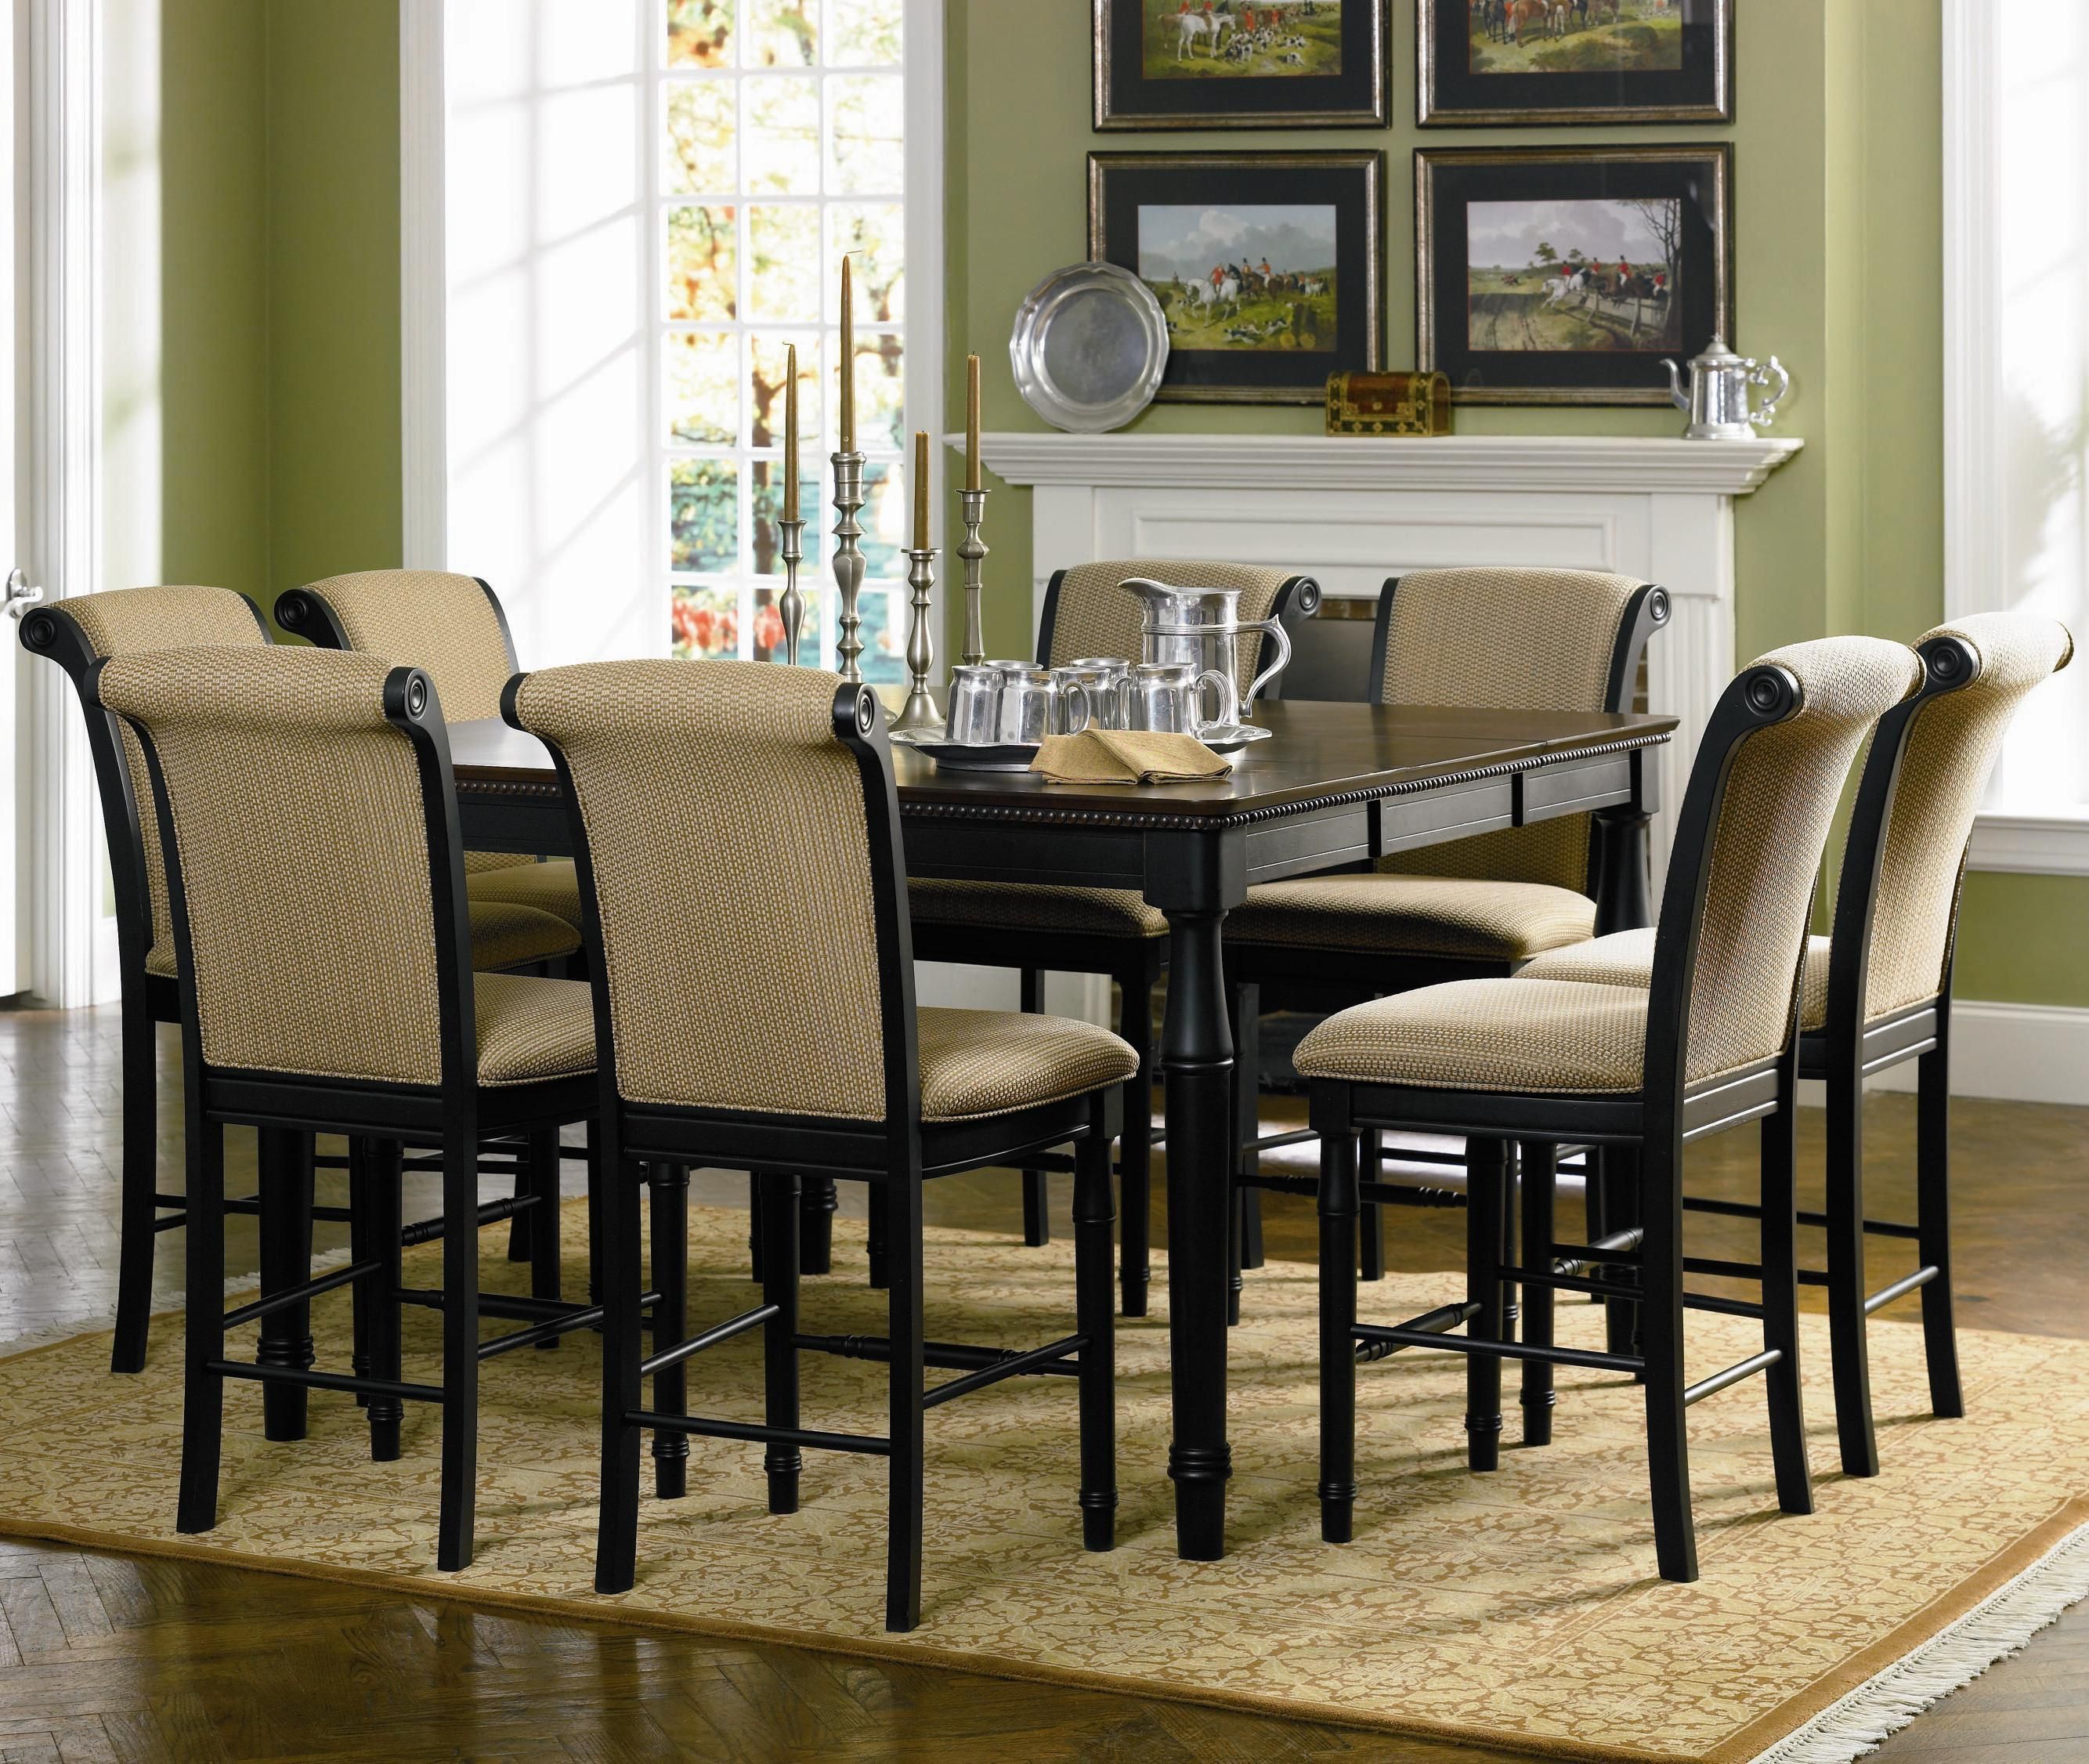 Cabrillo 9 Piece Counter Height Dining Setcoaster  Counter Alluring 9 Pc Dining Room Sets Design Ideas